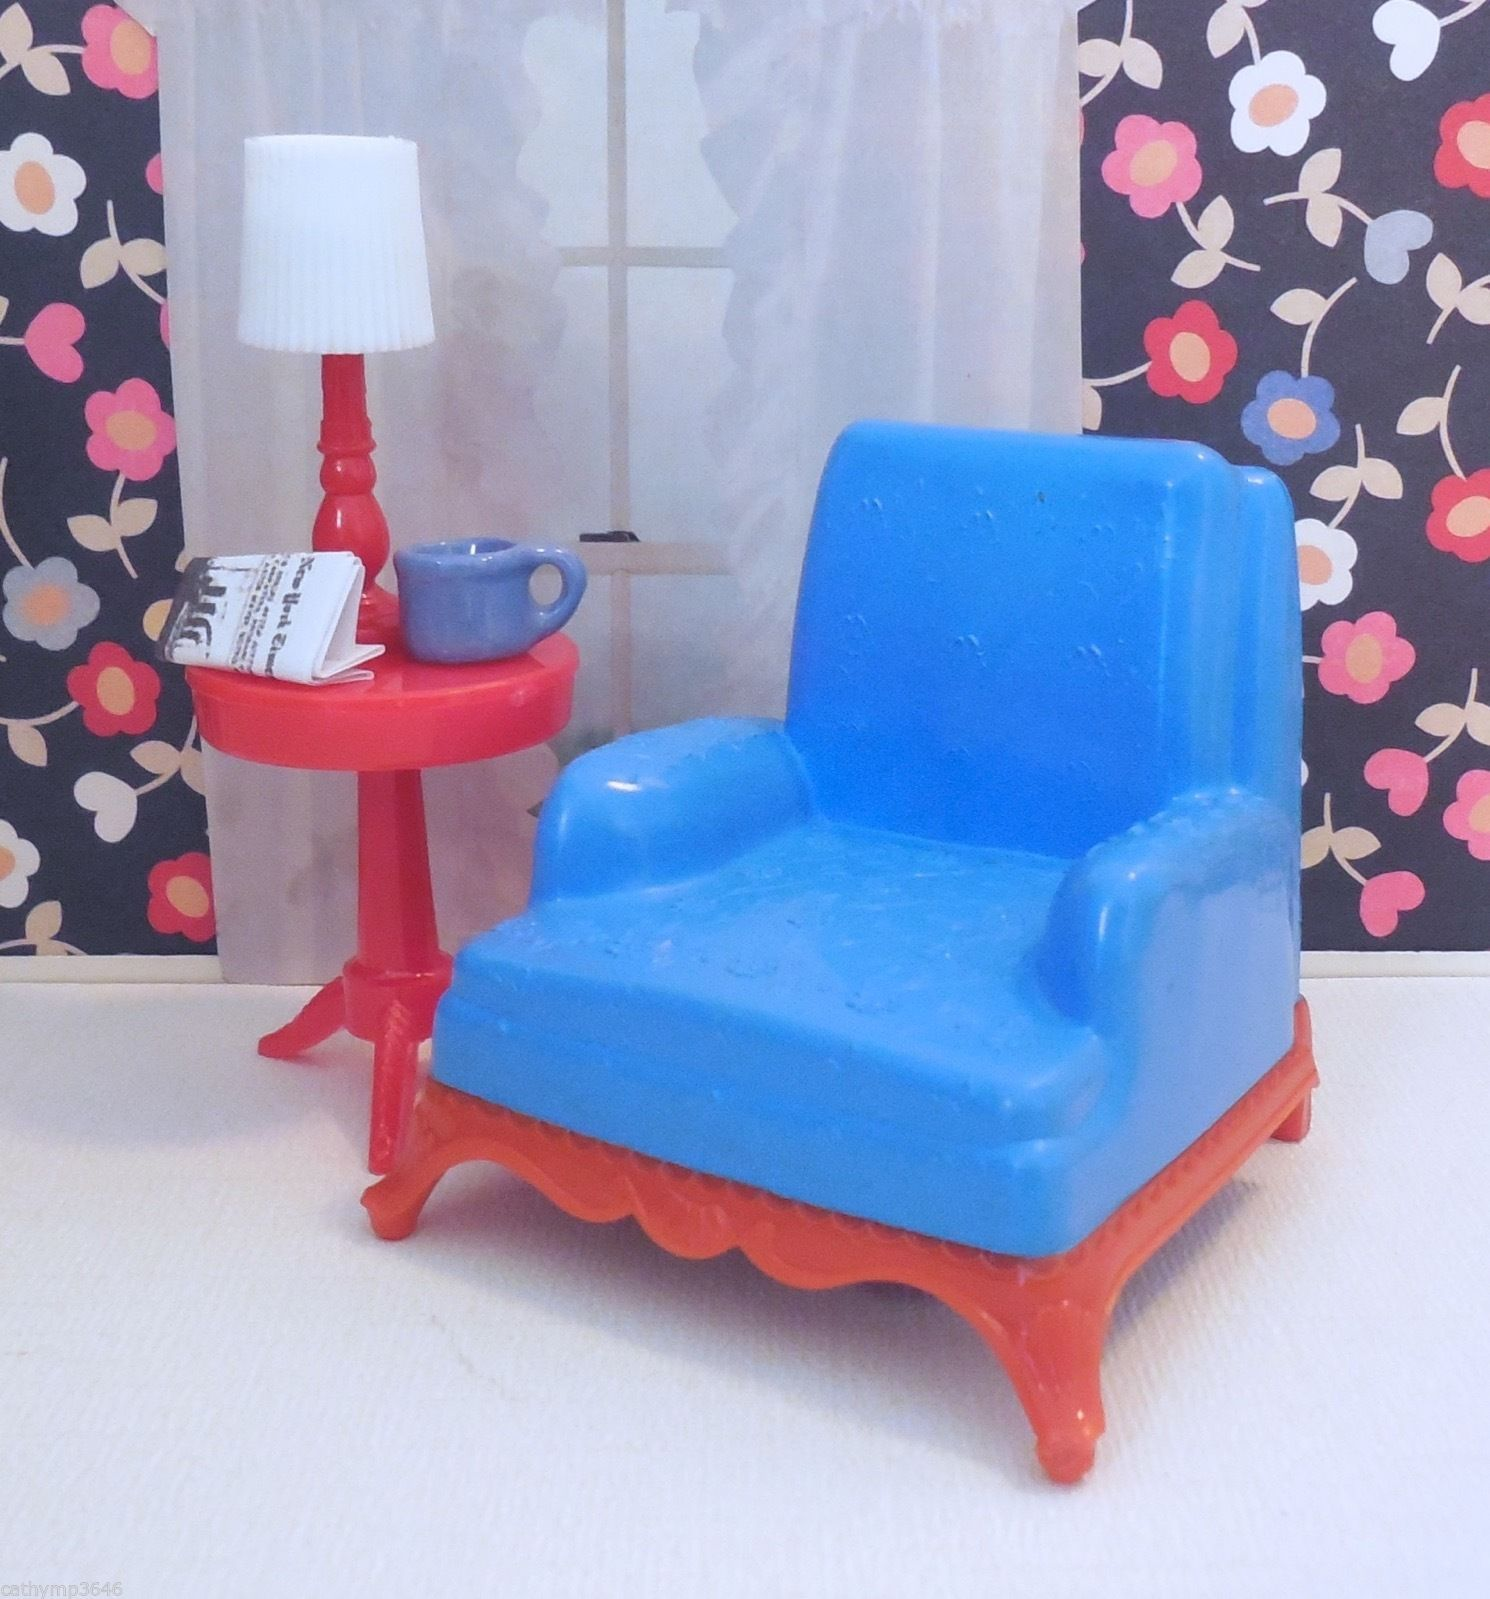 Renwal CLUB CHAIR W/ ROUND TABLE Vintage Dollhouse Furniture Ideal Plastic 1 :16